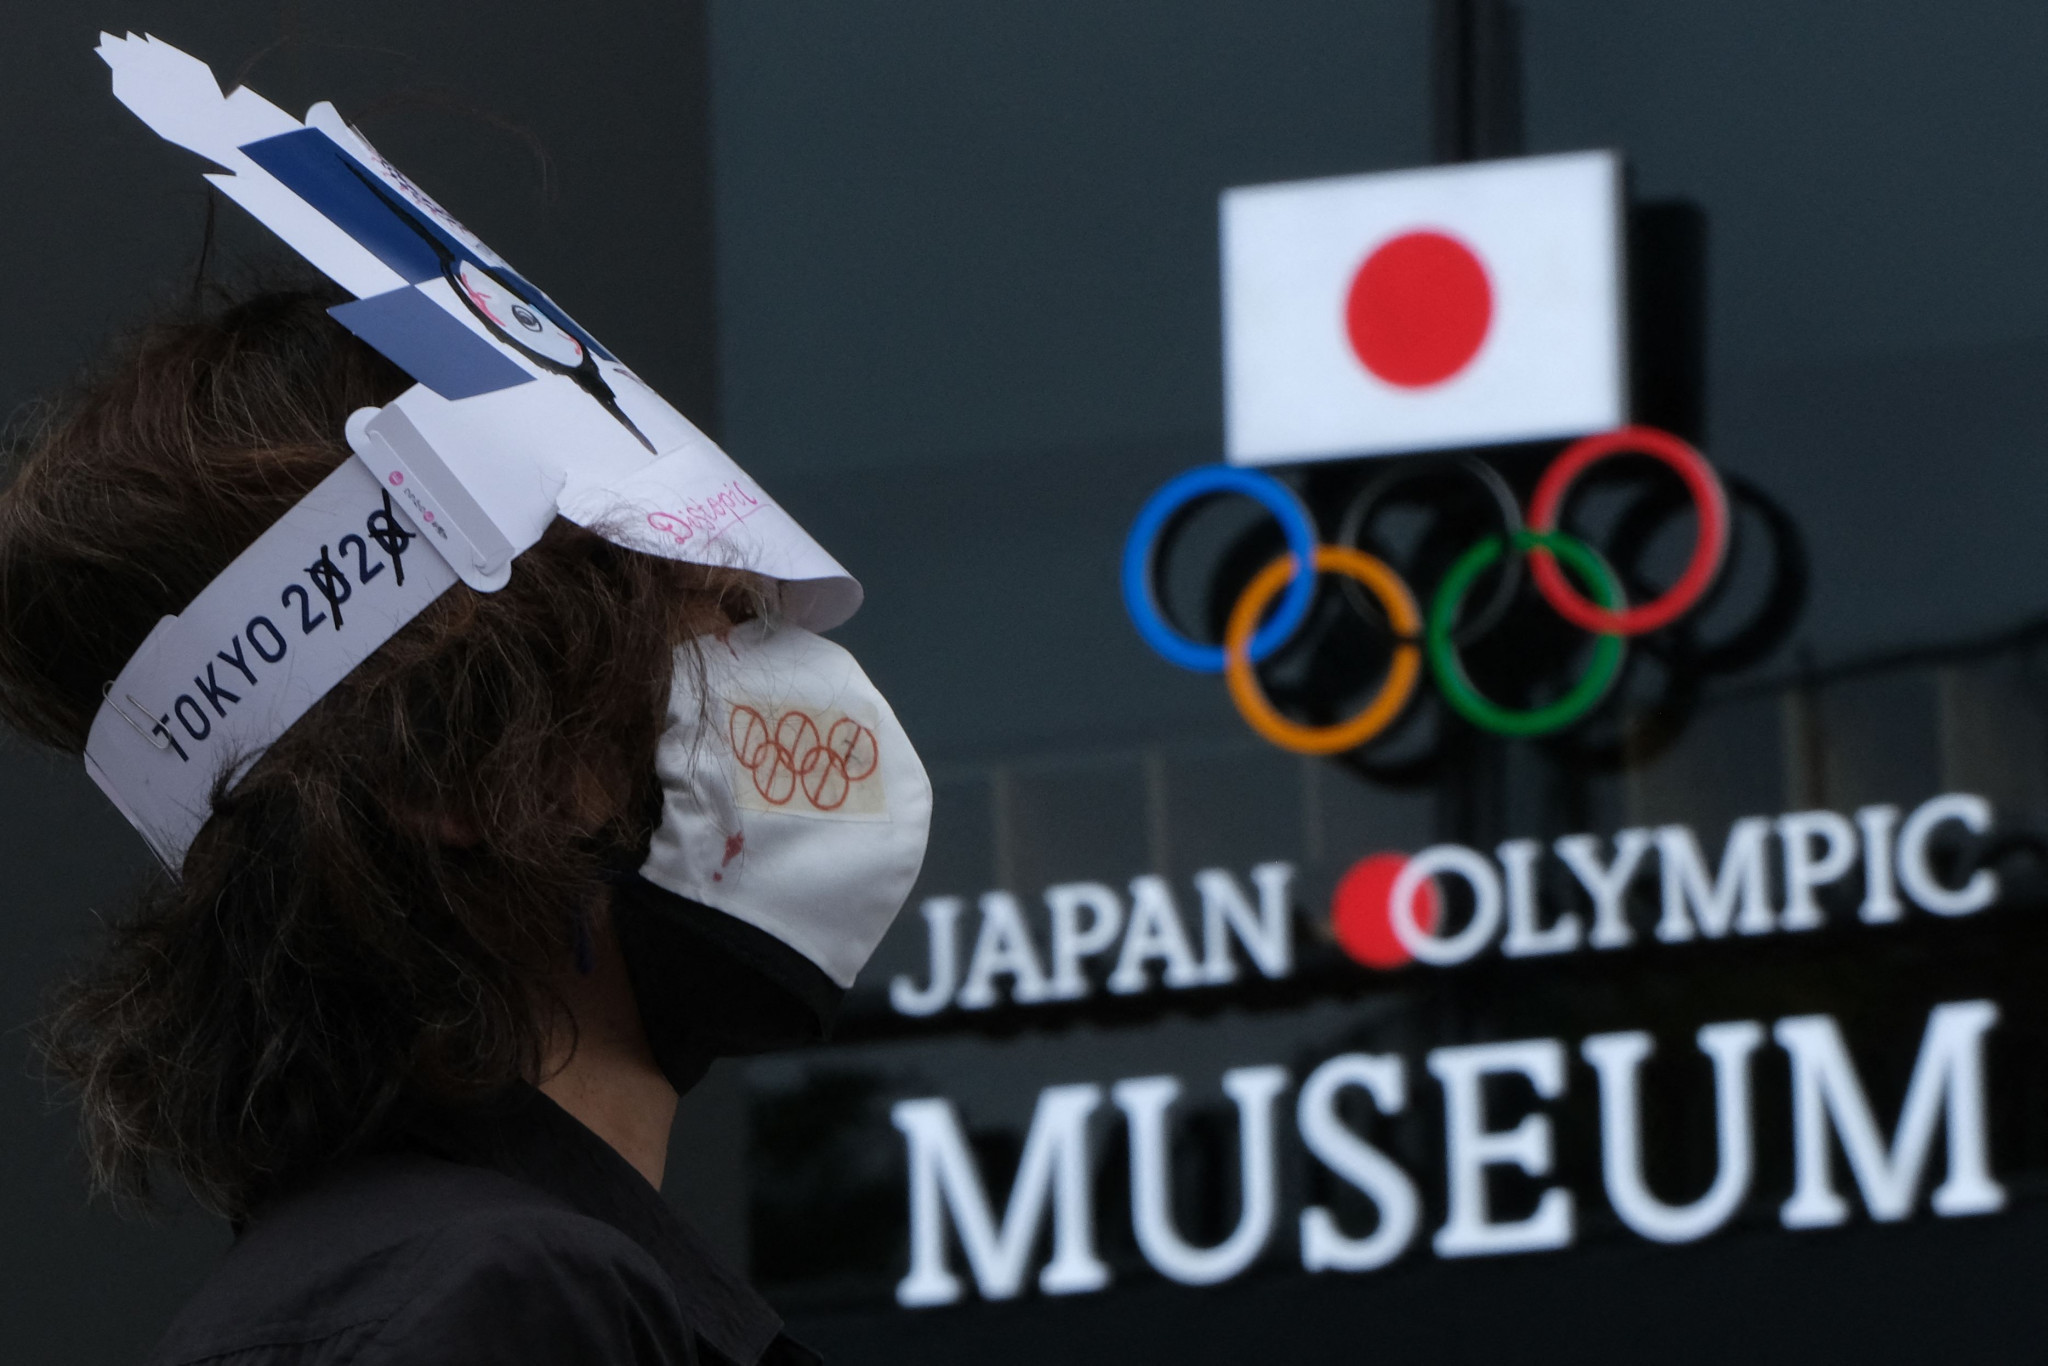 Japanese Olympic Committee to begin vaccination of athletes ahead of Tokyo 2020 on June 1